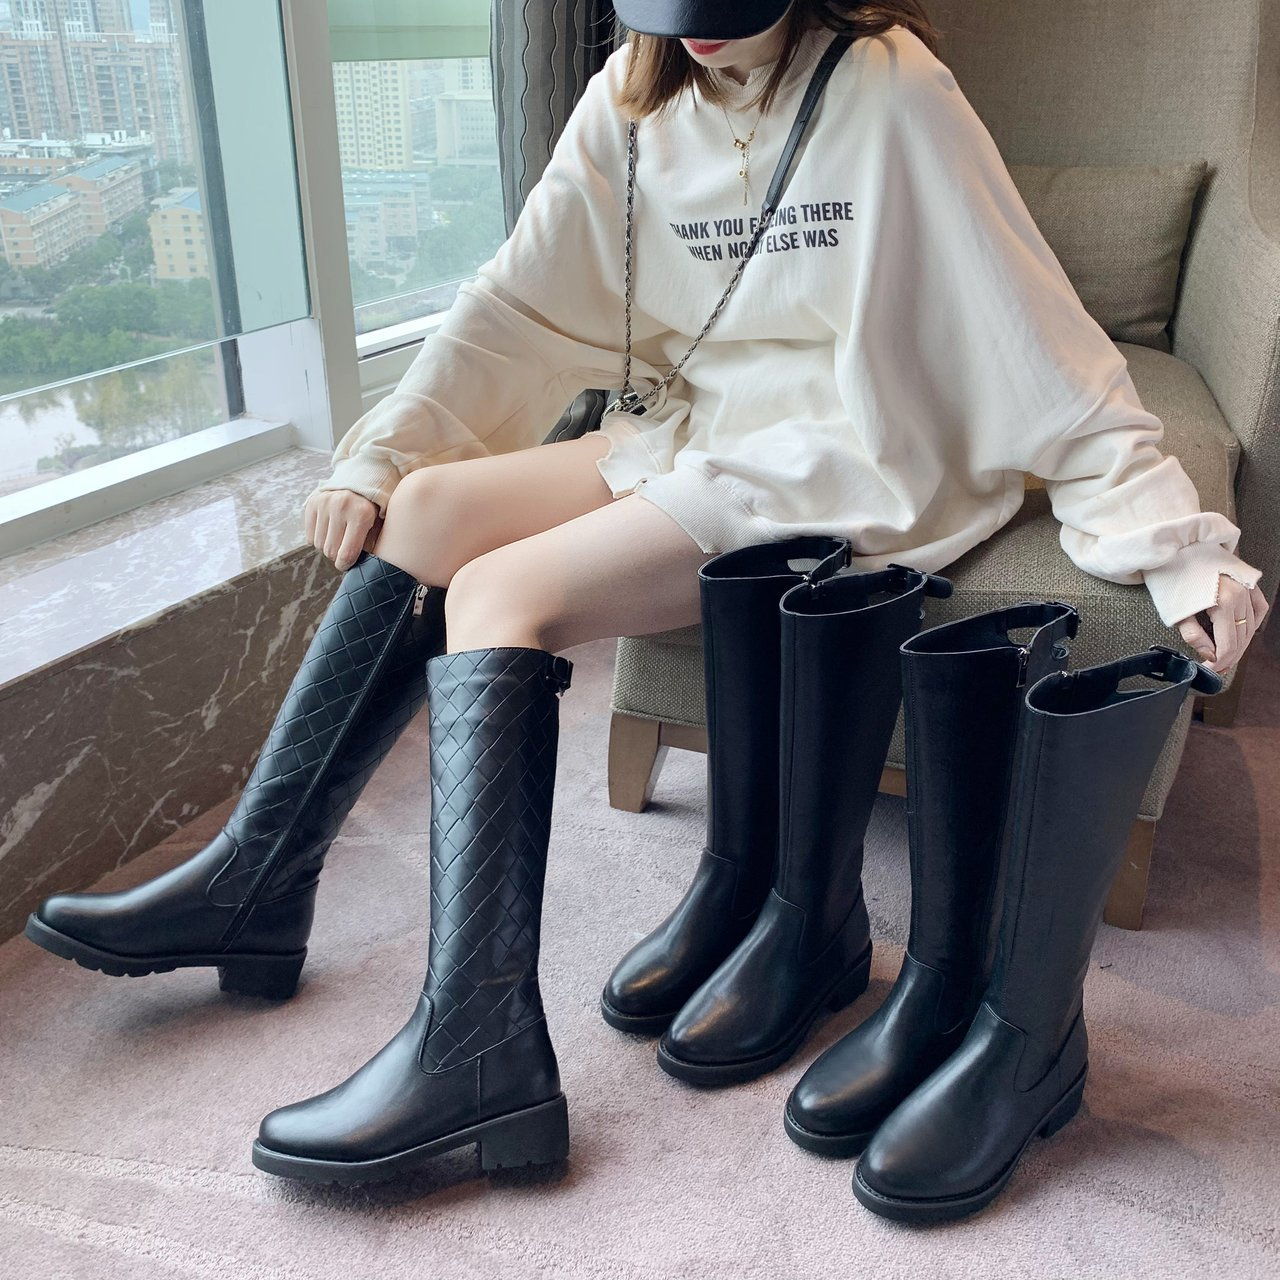 Malings new but knee boots womens slim high Knight boots British style womens boots side zipper high tube womens Boots